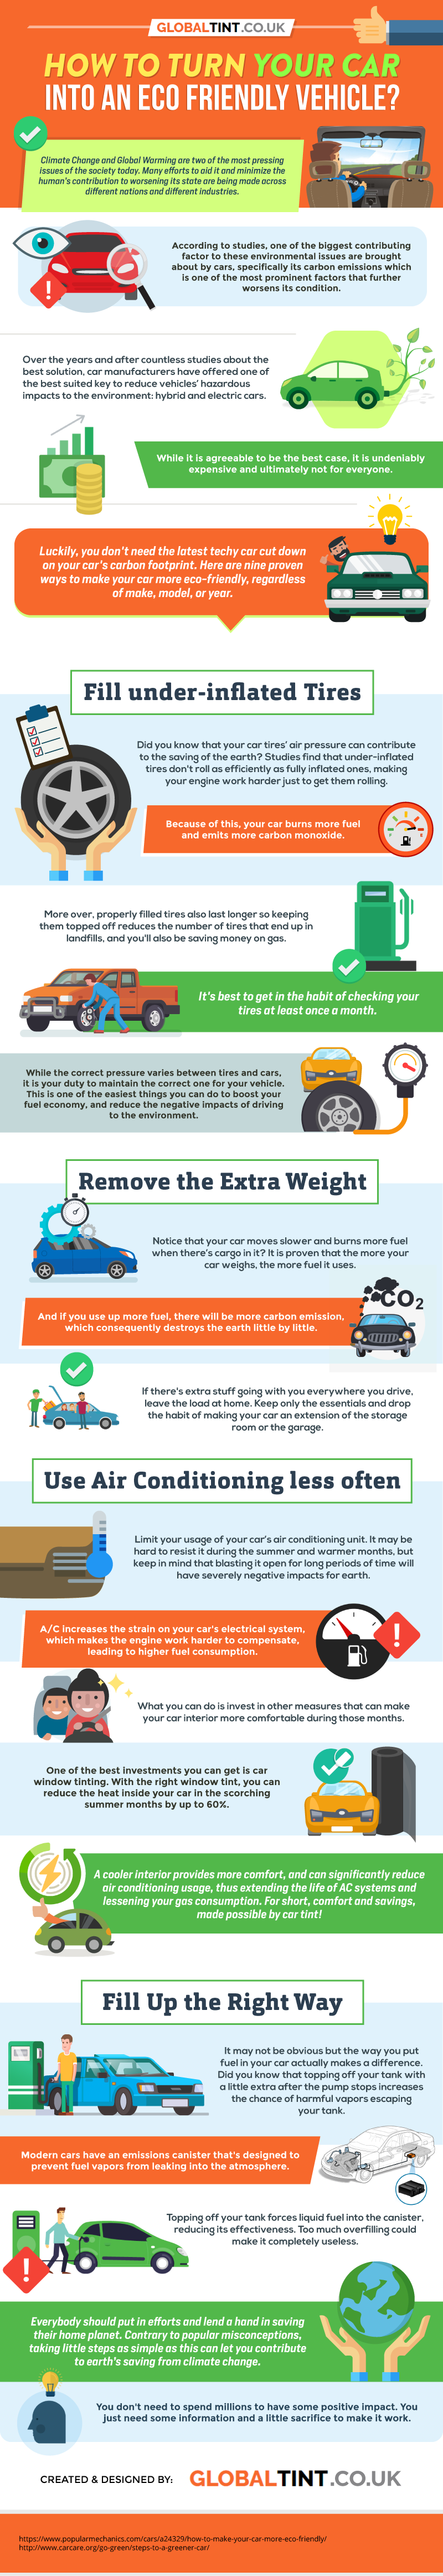 How To Turn Your Car Into an Eco-friendly Vehicle?